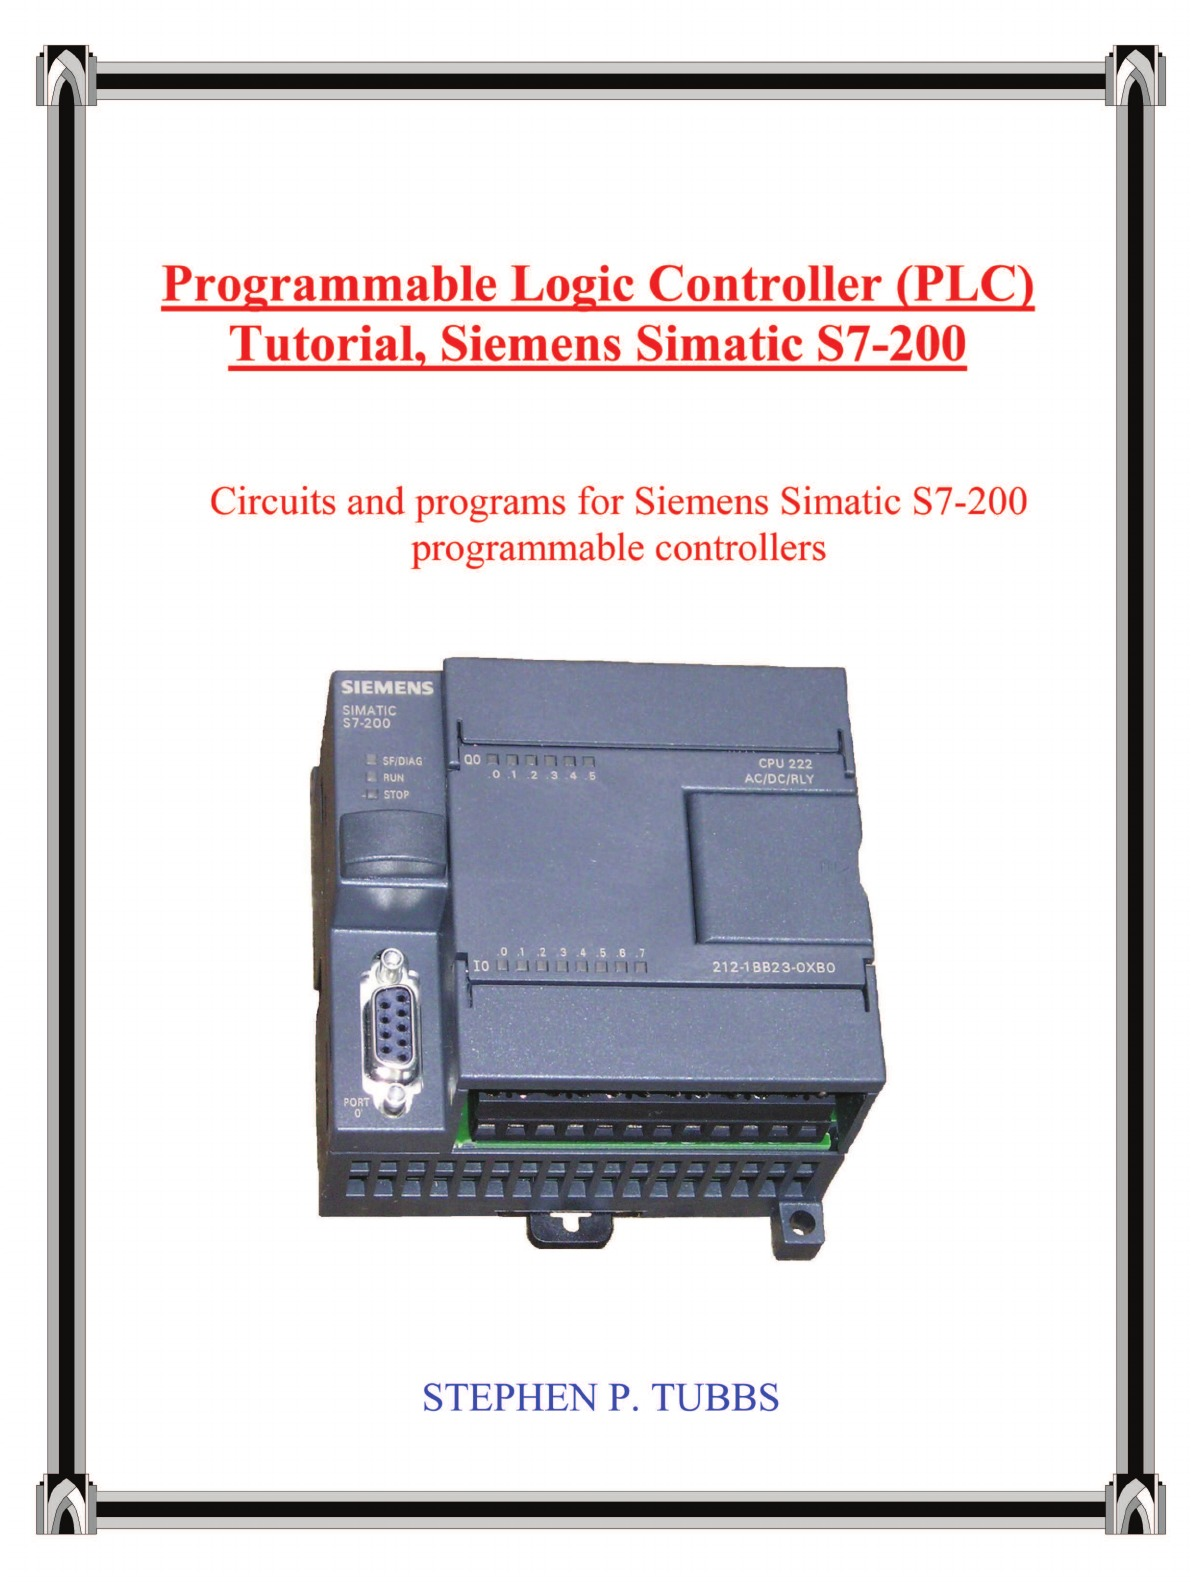 Stephen P. Tubbs Programmable Logic Controller (Plc) Tutorial, Siemens Simatic S7-200 hans berger automating with simatic s7 1500 configuring programming and testing with step 7 professional